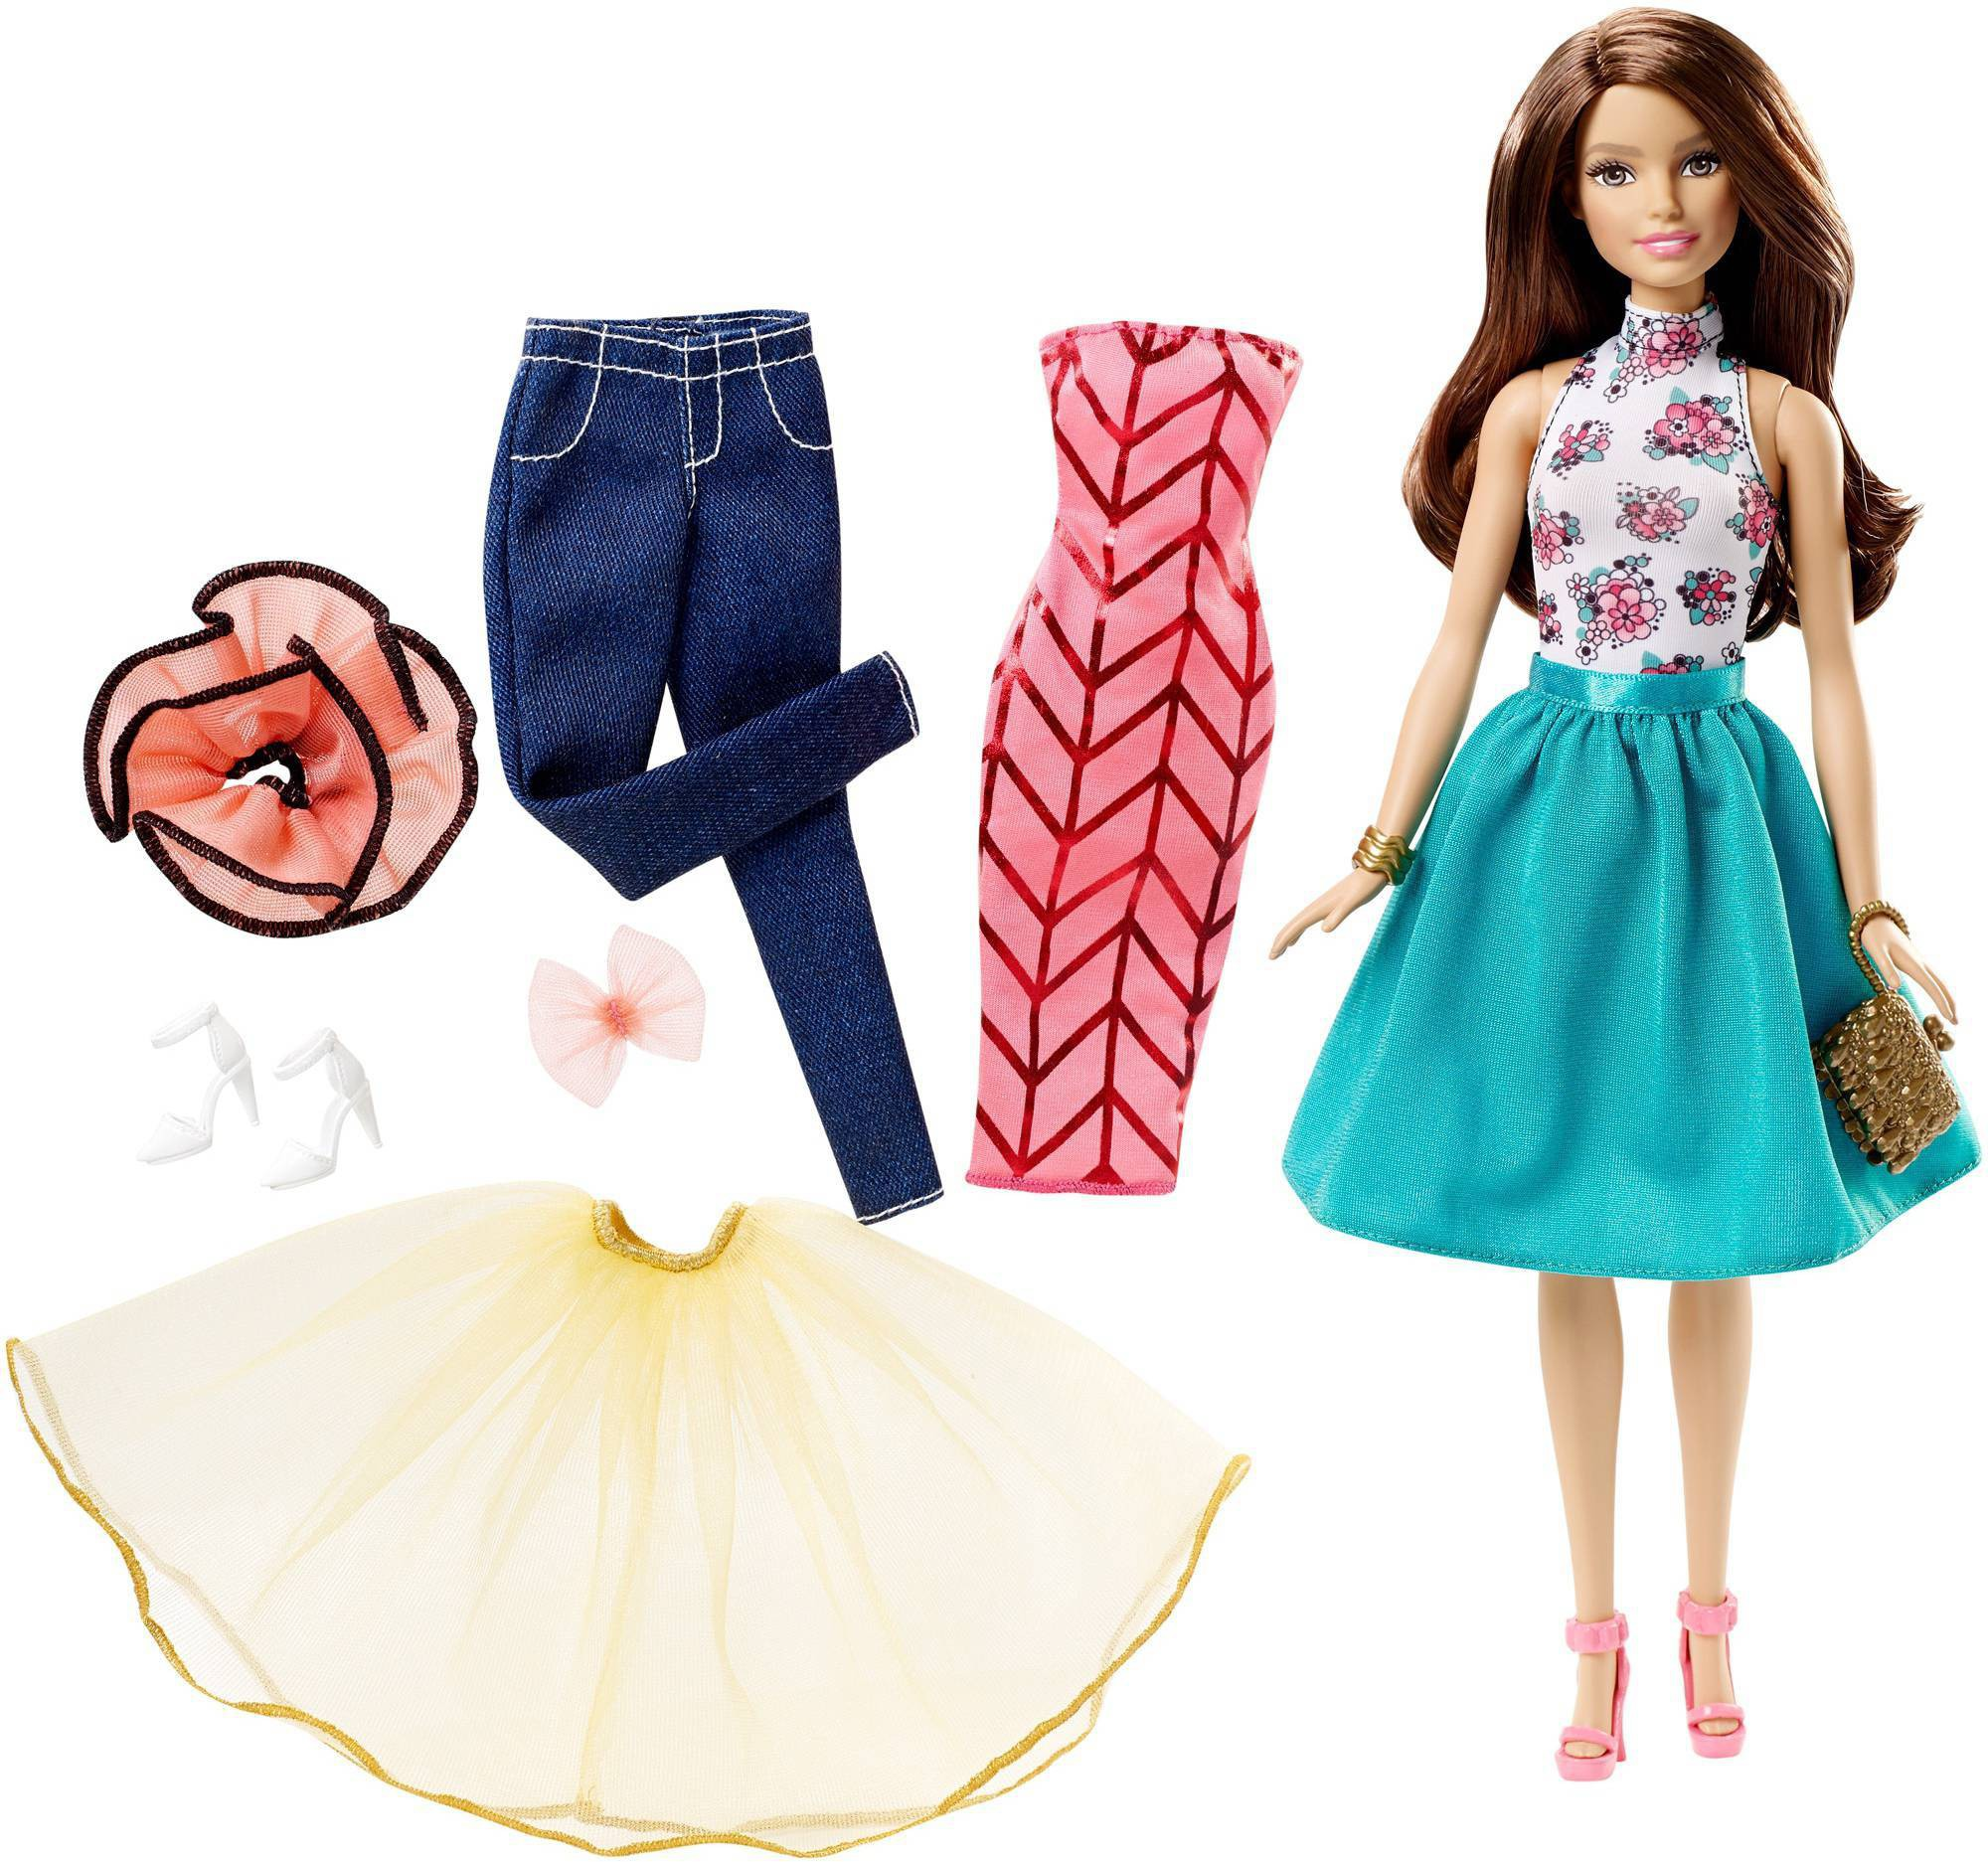 Deals | Top Brands Lego, Barbie...